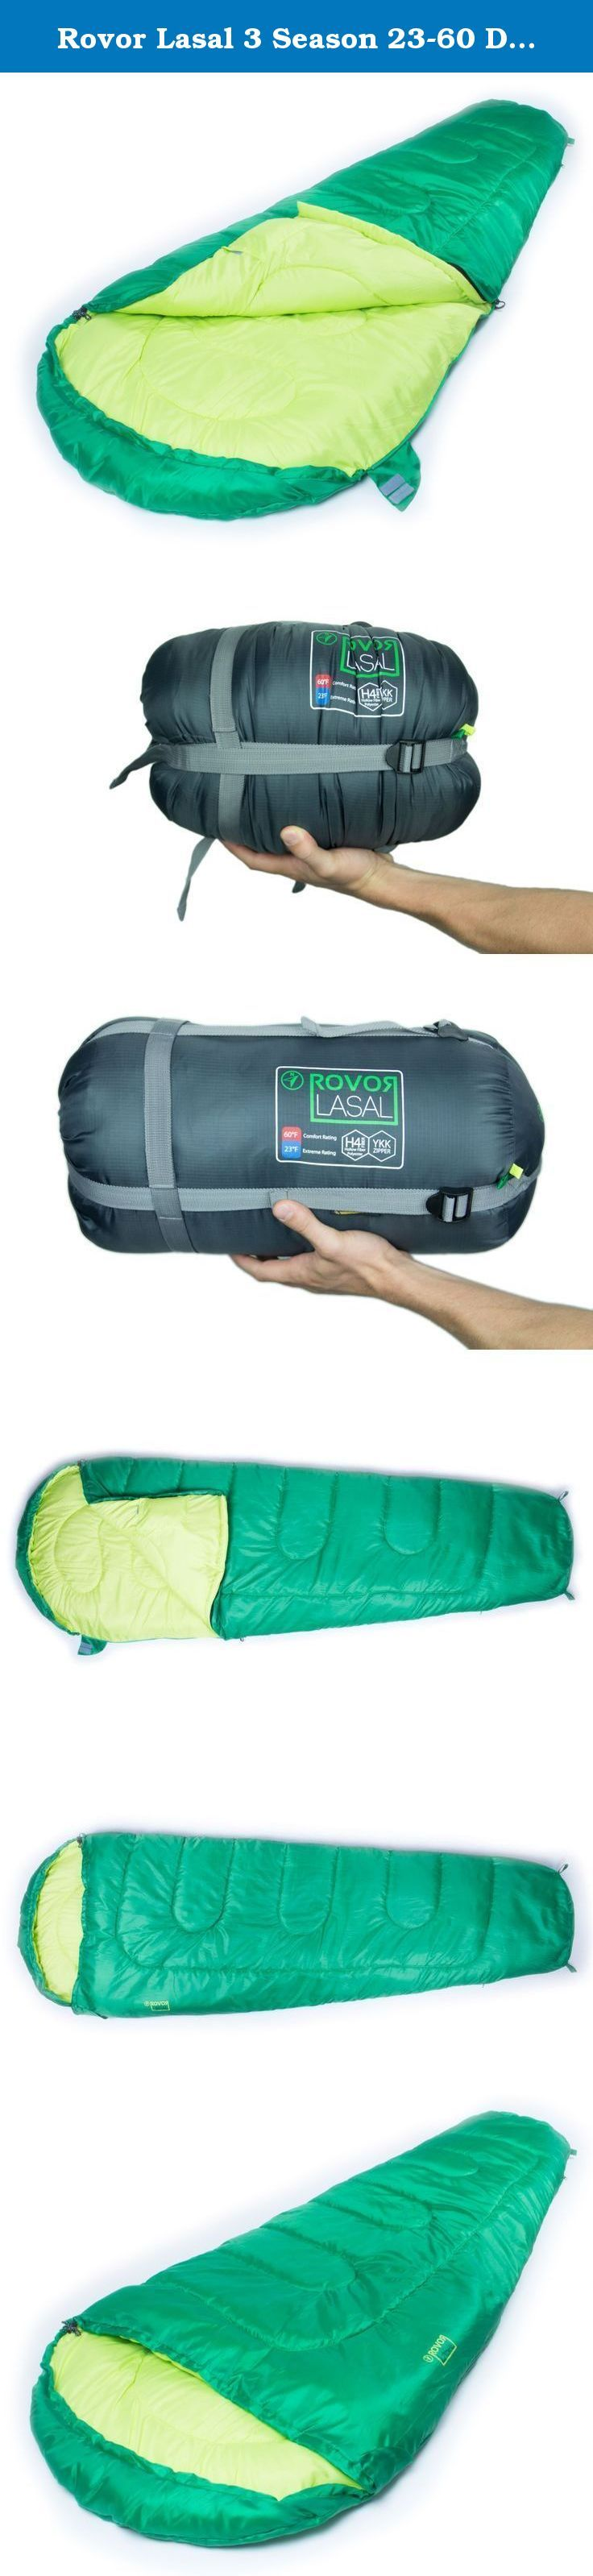 Rovor Lasal 3 Season 23-60 Degree Mummy Sleeping Bag. Indulge in ultimate comfort and warmth with the Rovor Lasal three-season Sleeping Bag. Ideal for Spring, Summer, and Fall camping, the H4 Hollow Fiber polyester fill will keep you comfortable and warm The Lasal measures 90 inches long, 32 inches wide at the shoulders, and 22 inches wide at the foot. When packed in the included stuff-sack the Lasal measures 15 inches long with an 8 inch diameter (uncompressed) and weighs 3 pounds Rovor...